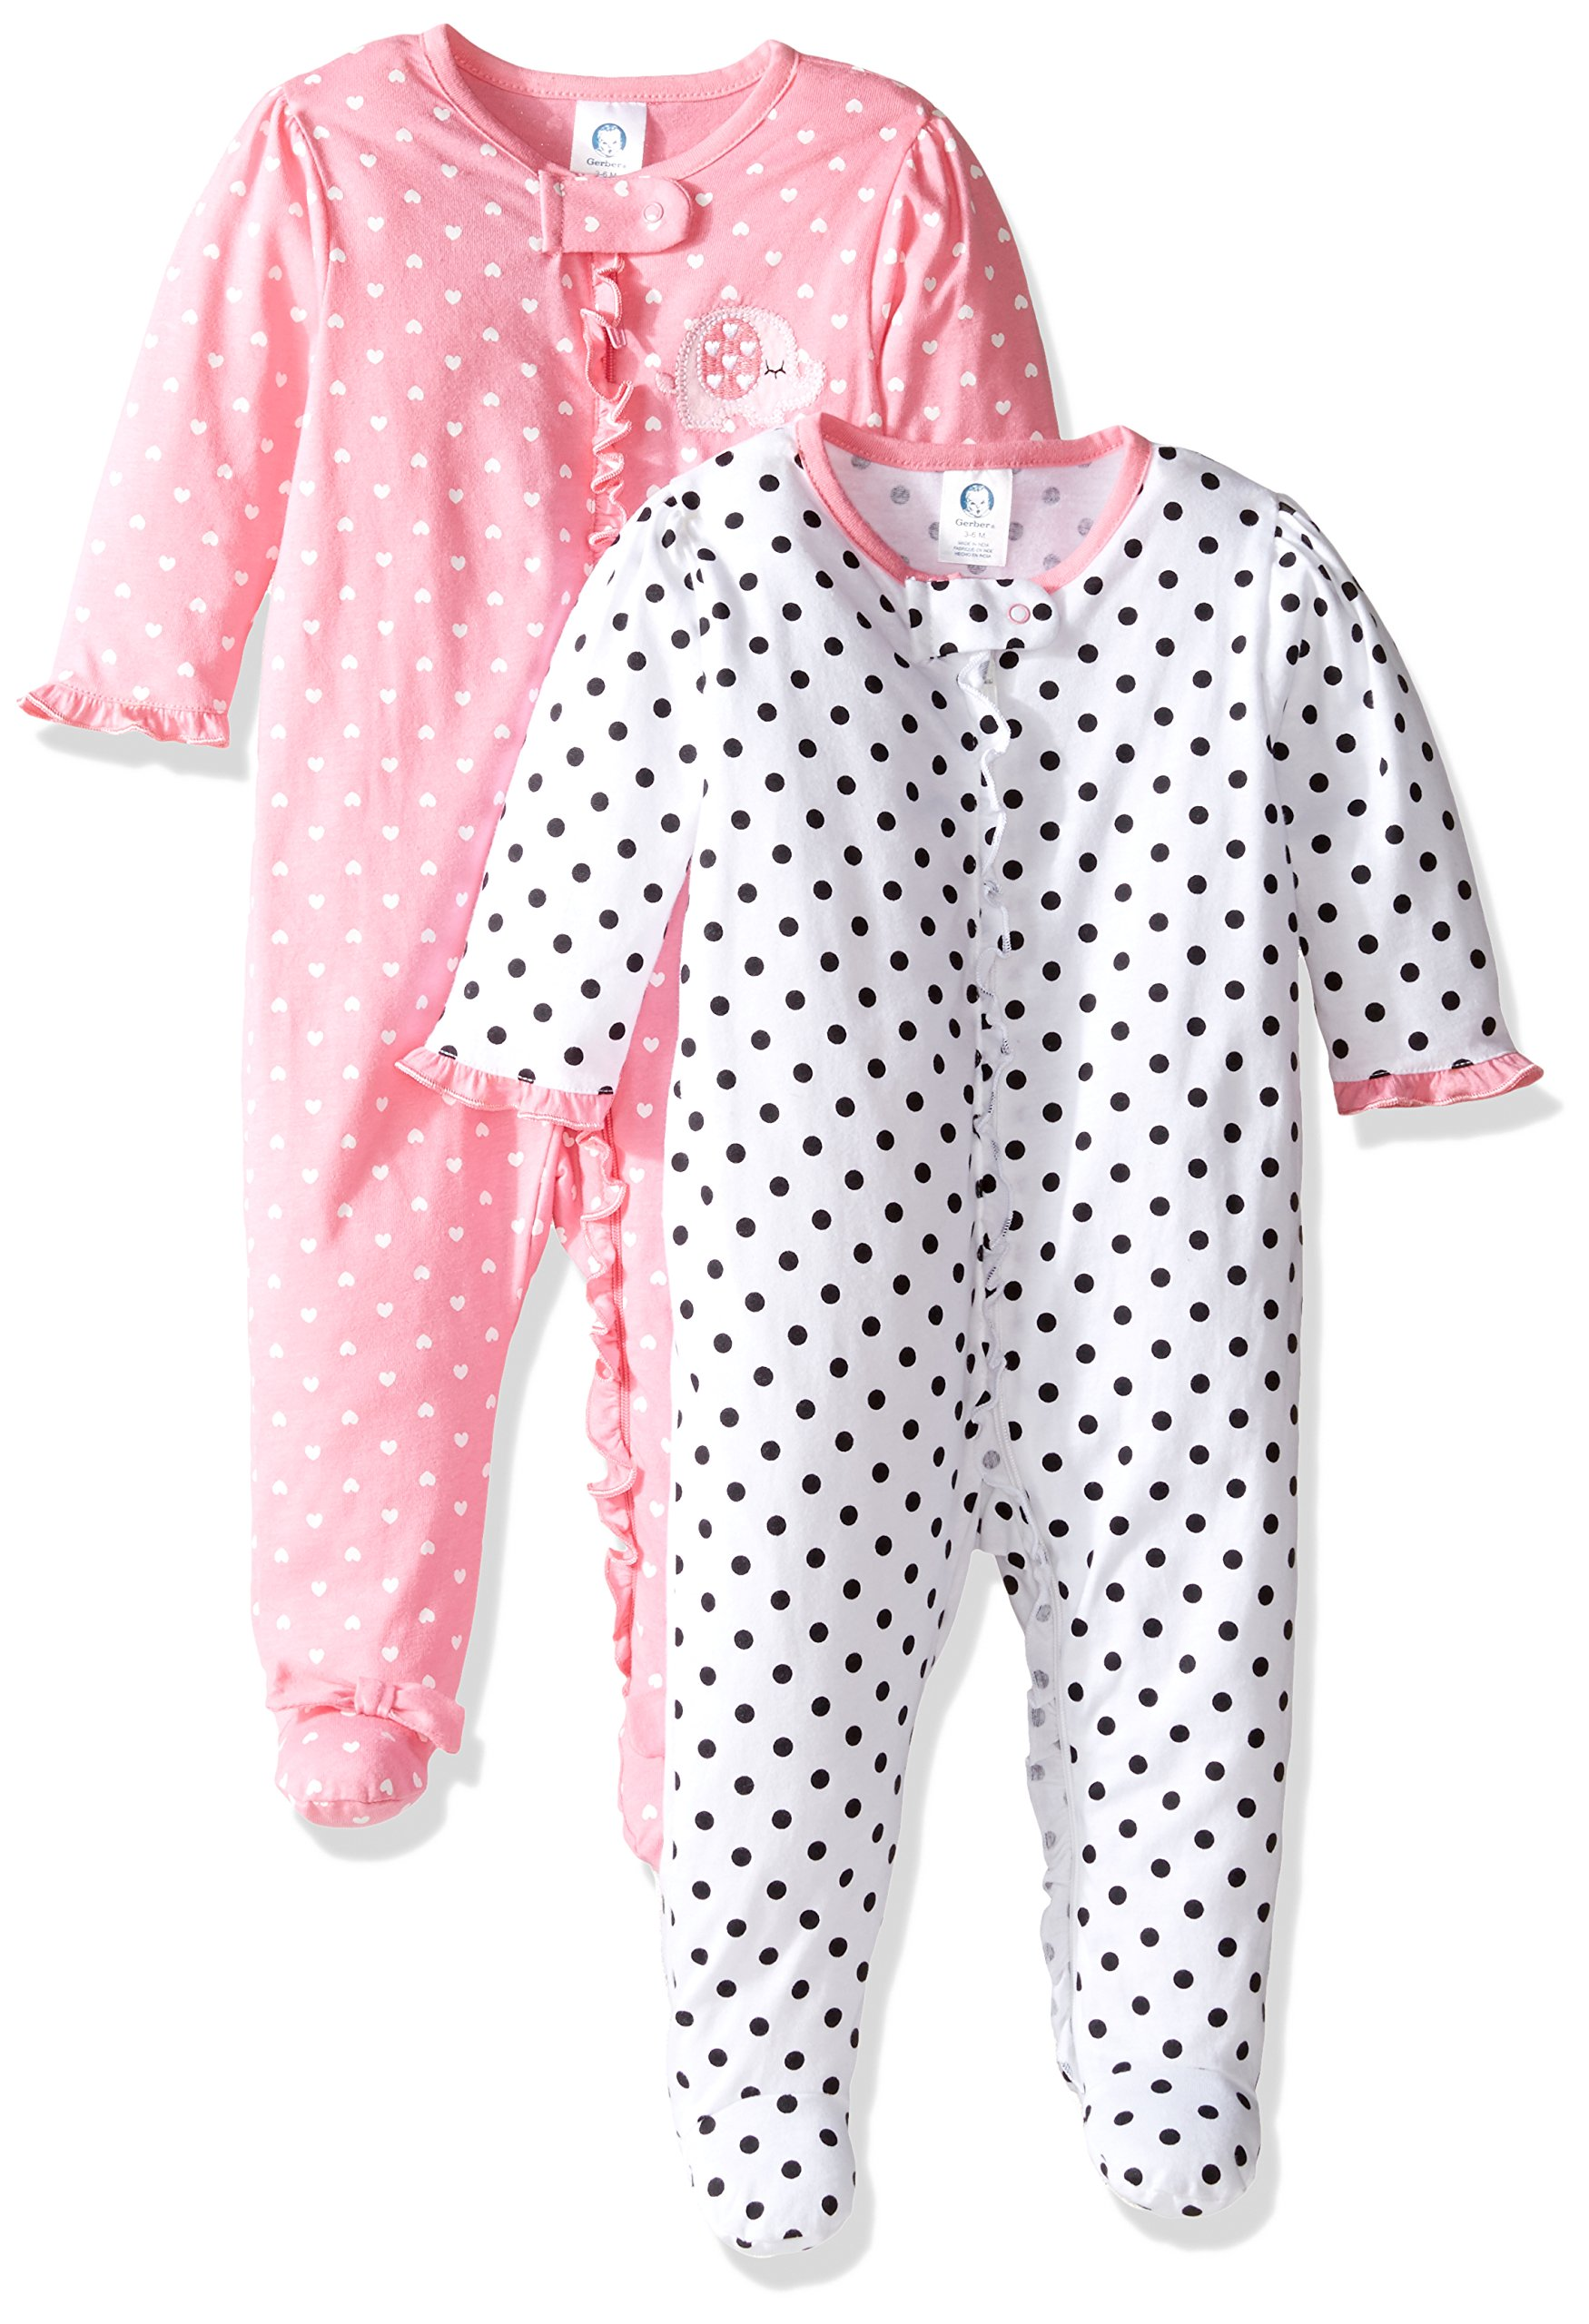 Gerber Baby Girls' 2 Pack Zip Front Sleep 'n Play,Elephants/Flowers,0-3 Months by Gerber